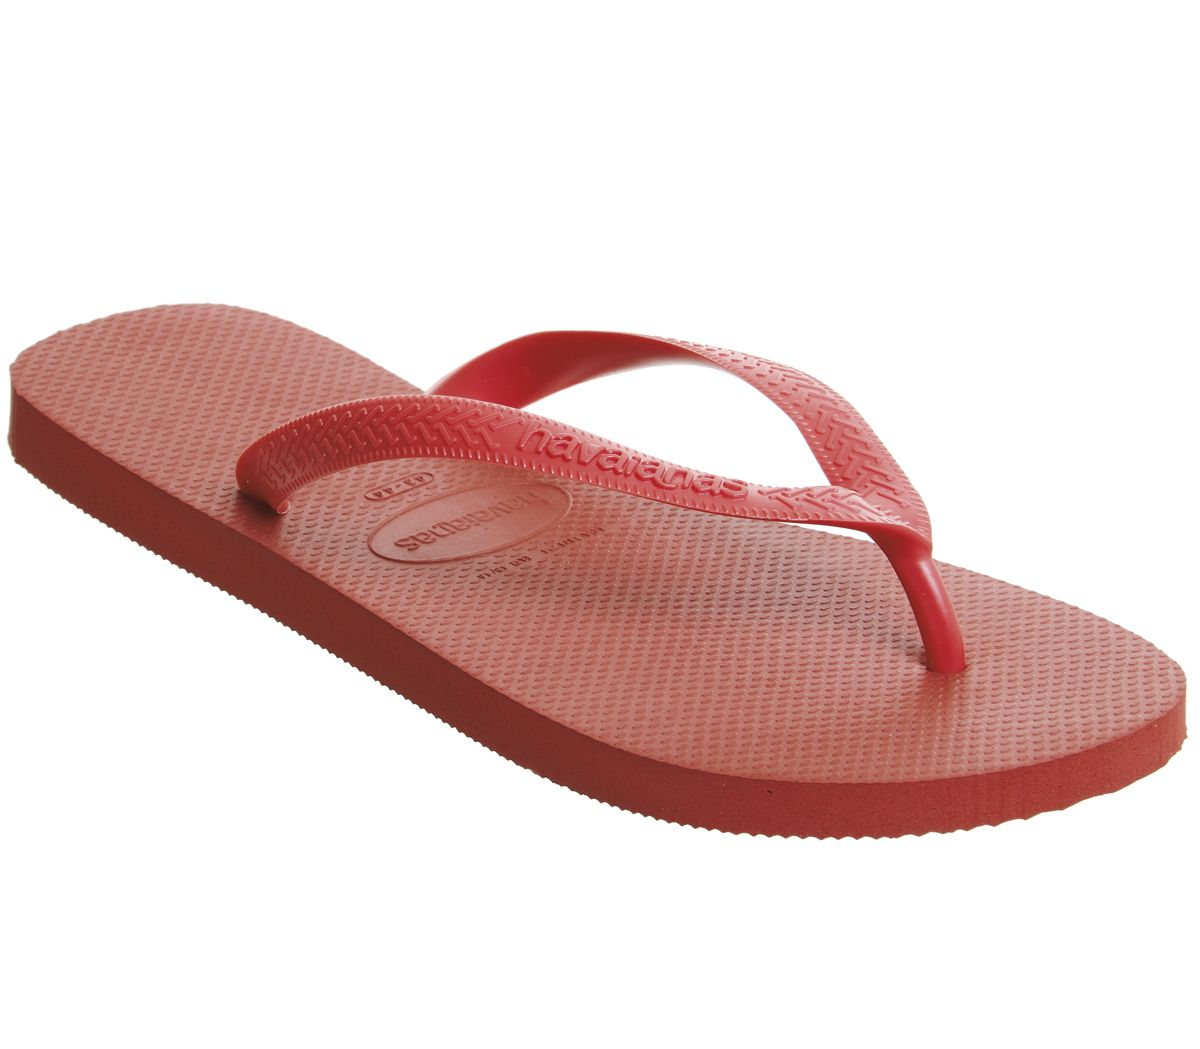 43a55adc38d Havaianas Top Flip Flops Ruby Red - Sandals